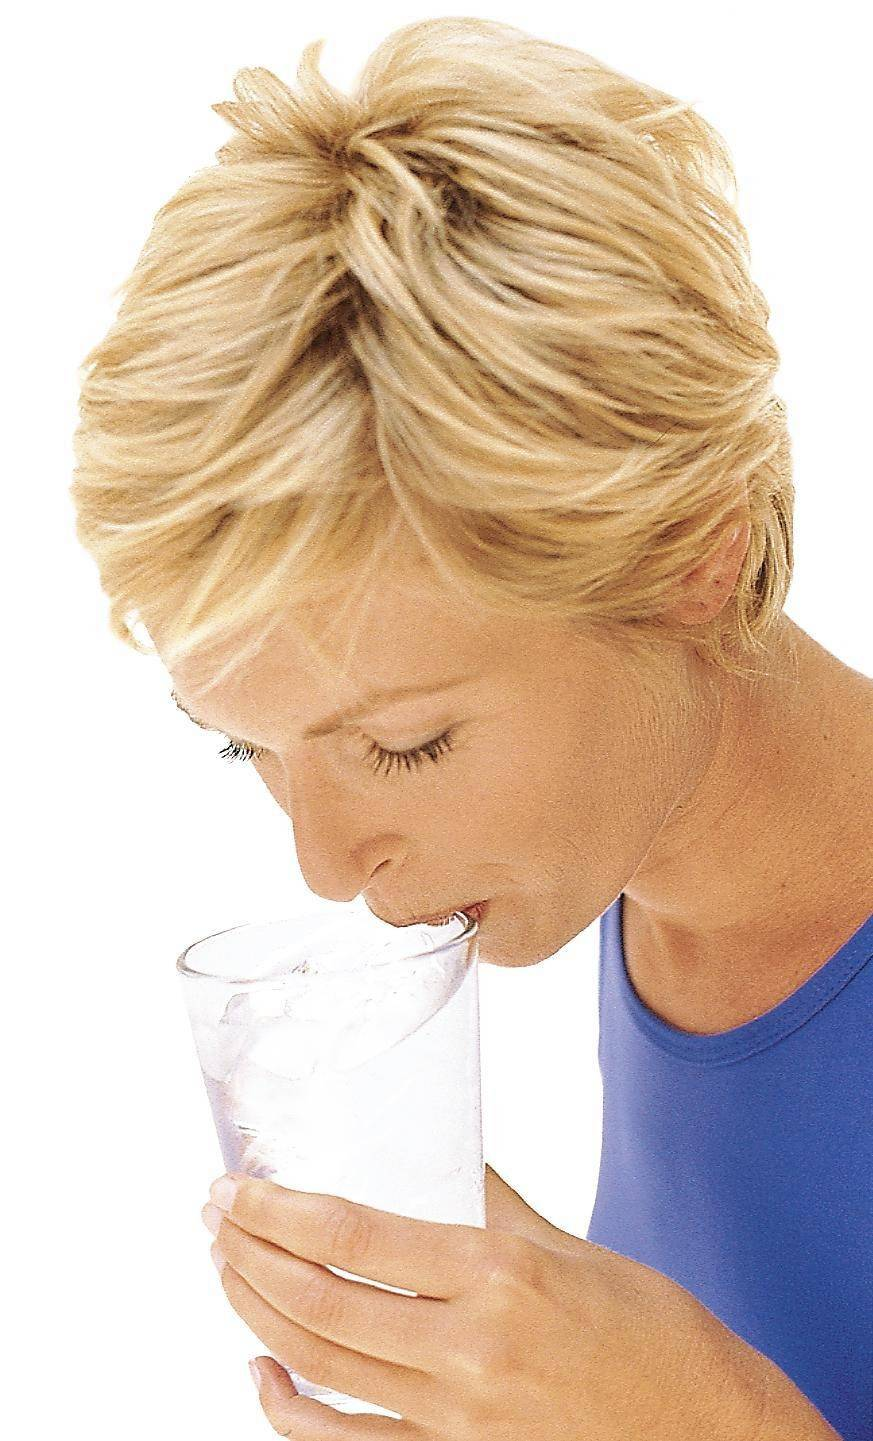 The best thing to drink is water.